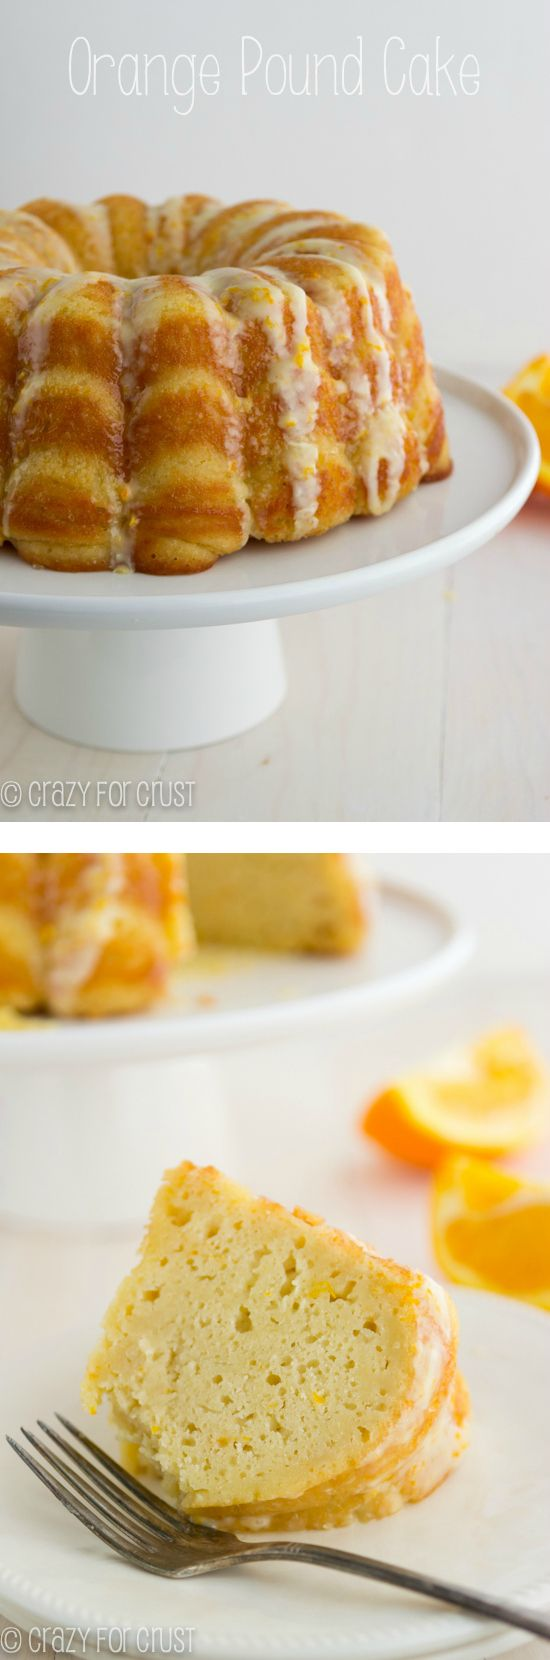 Orange Pound Cake | crazyforcrust.com | A pound cake made with greek ...